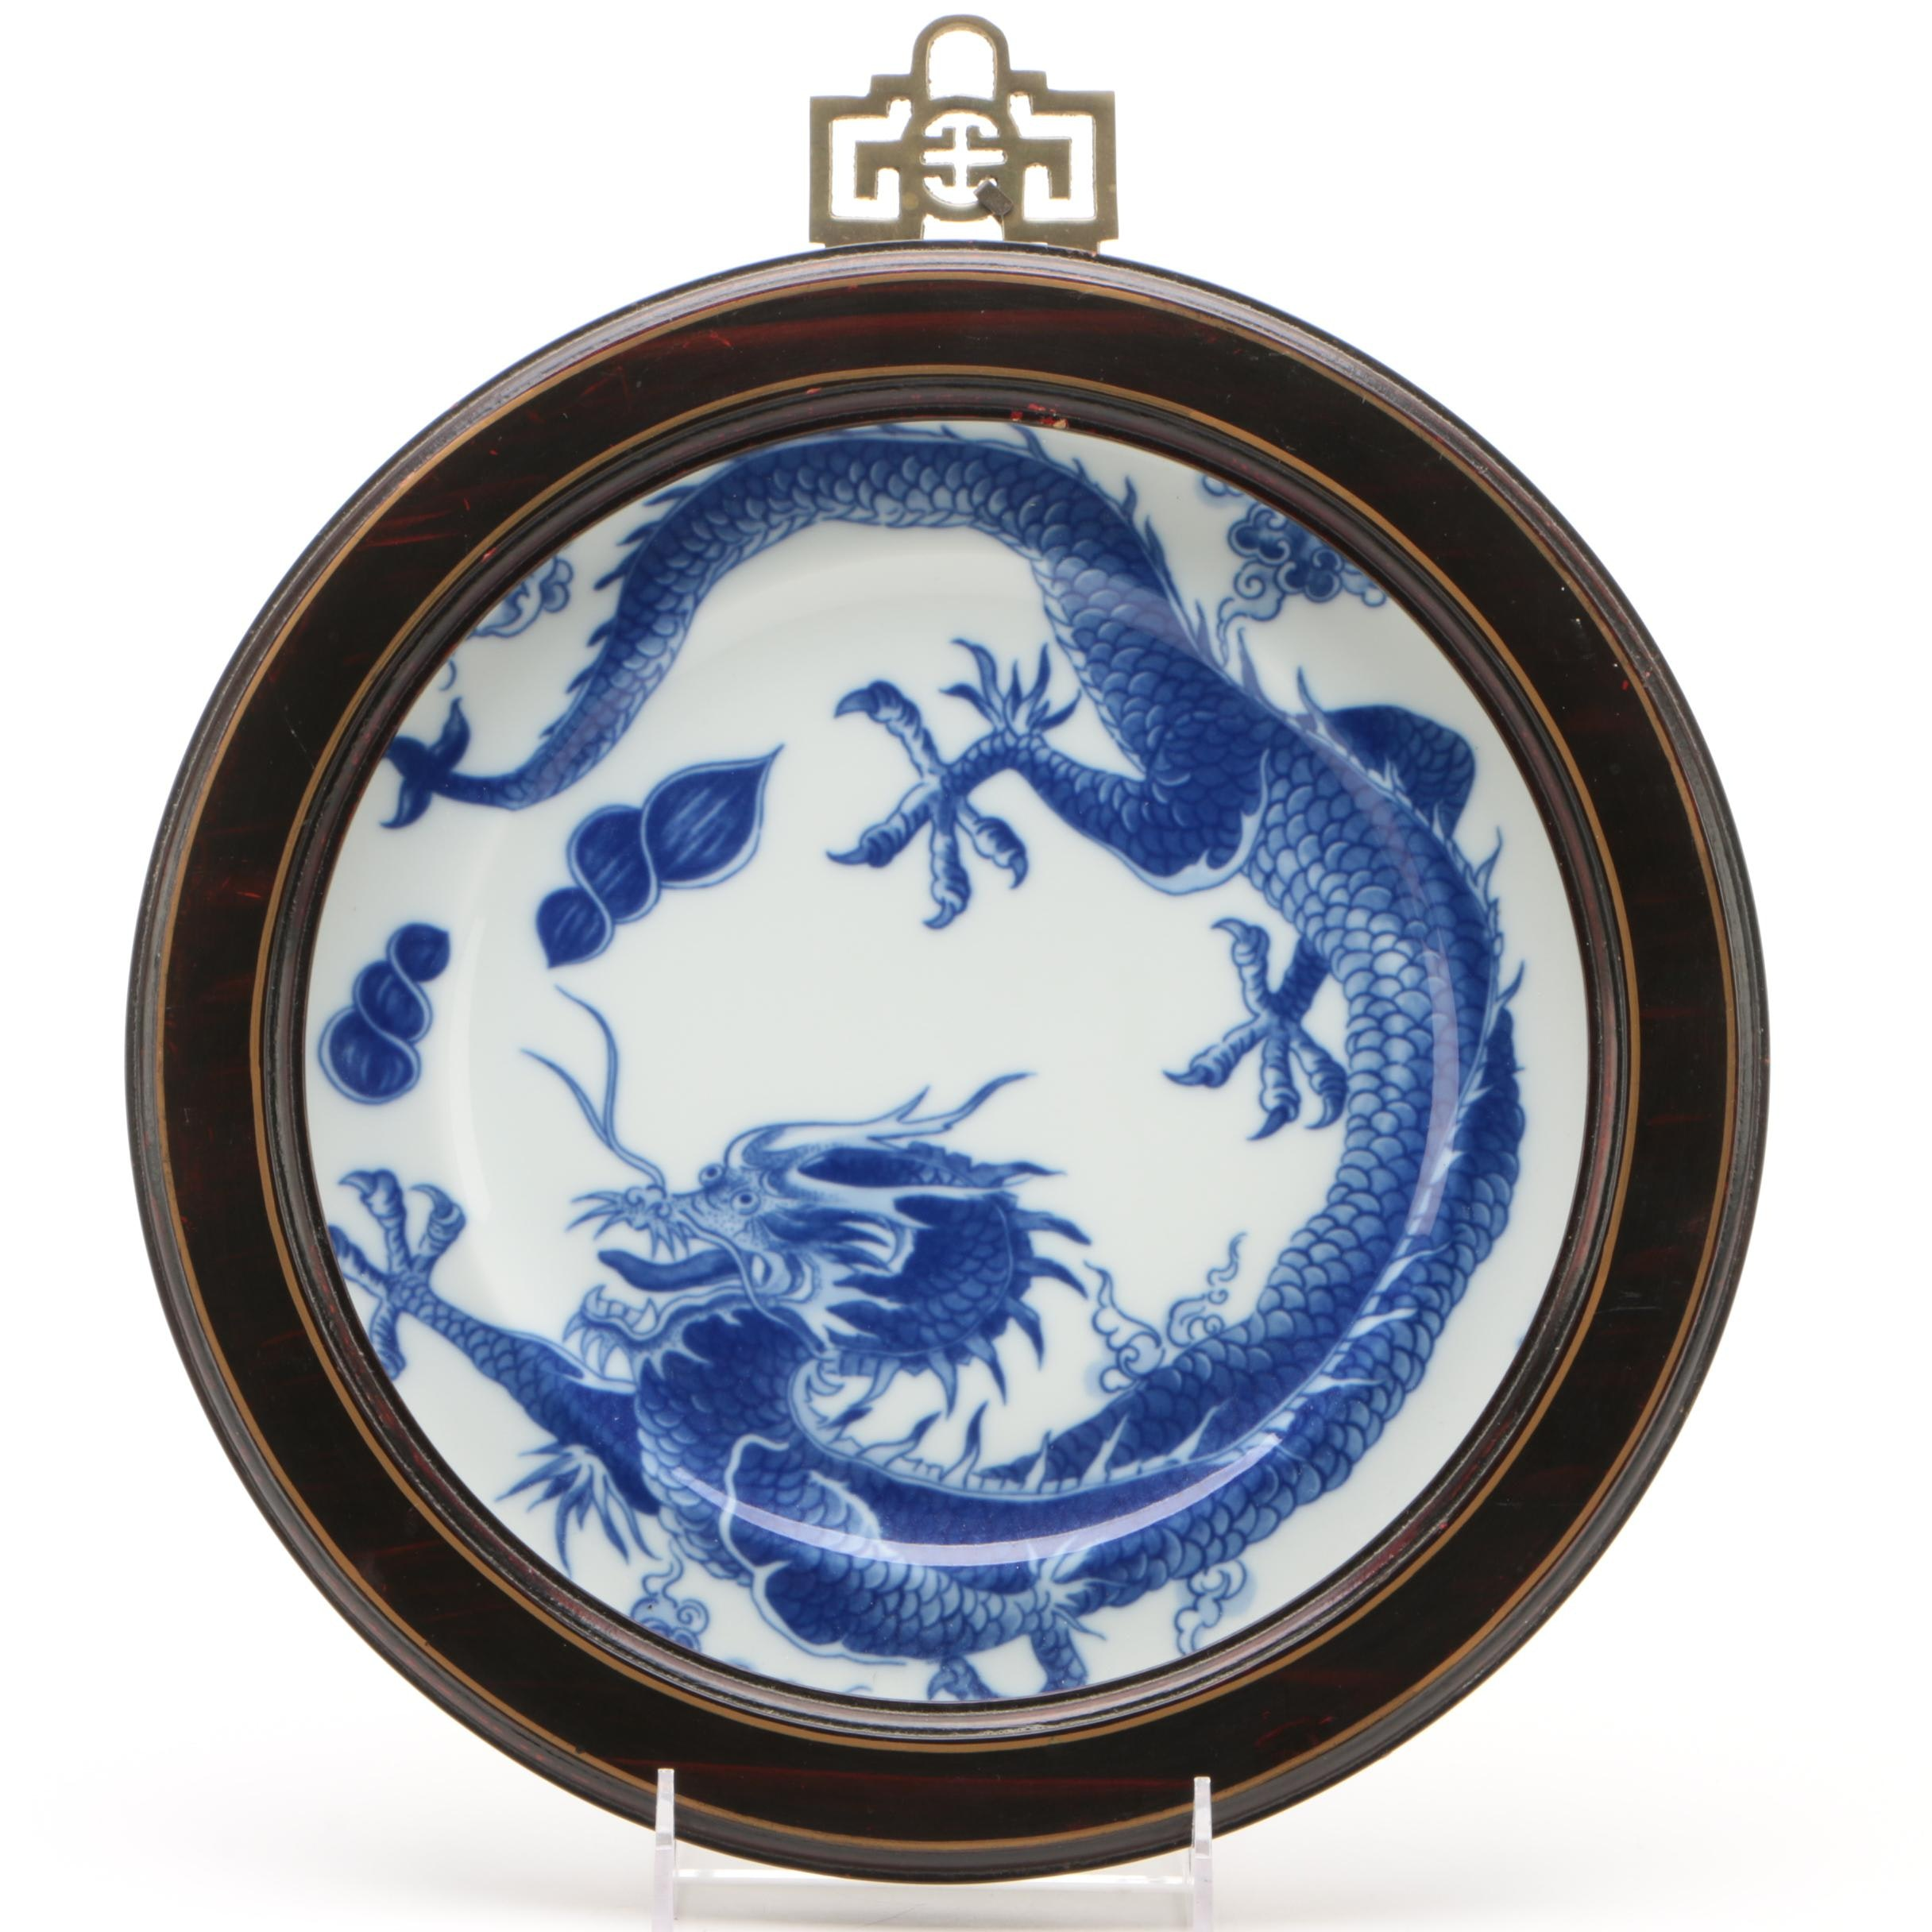 Framed Portuguese Ceramic Blue and White Dragon Plate